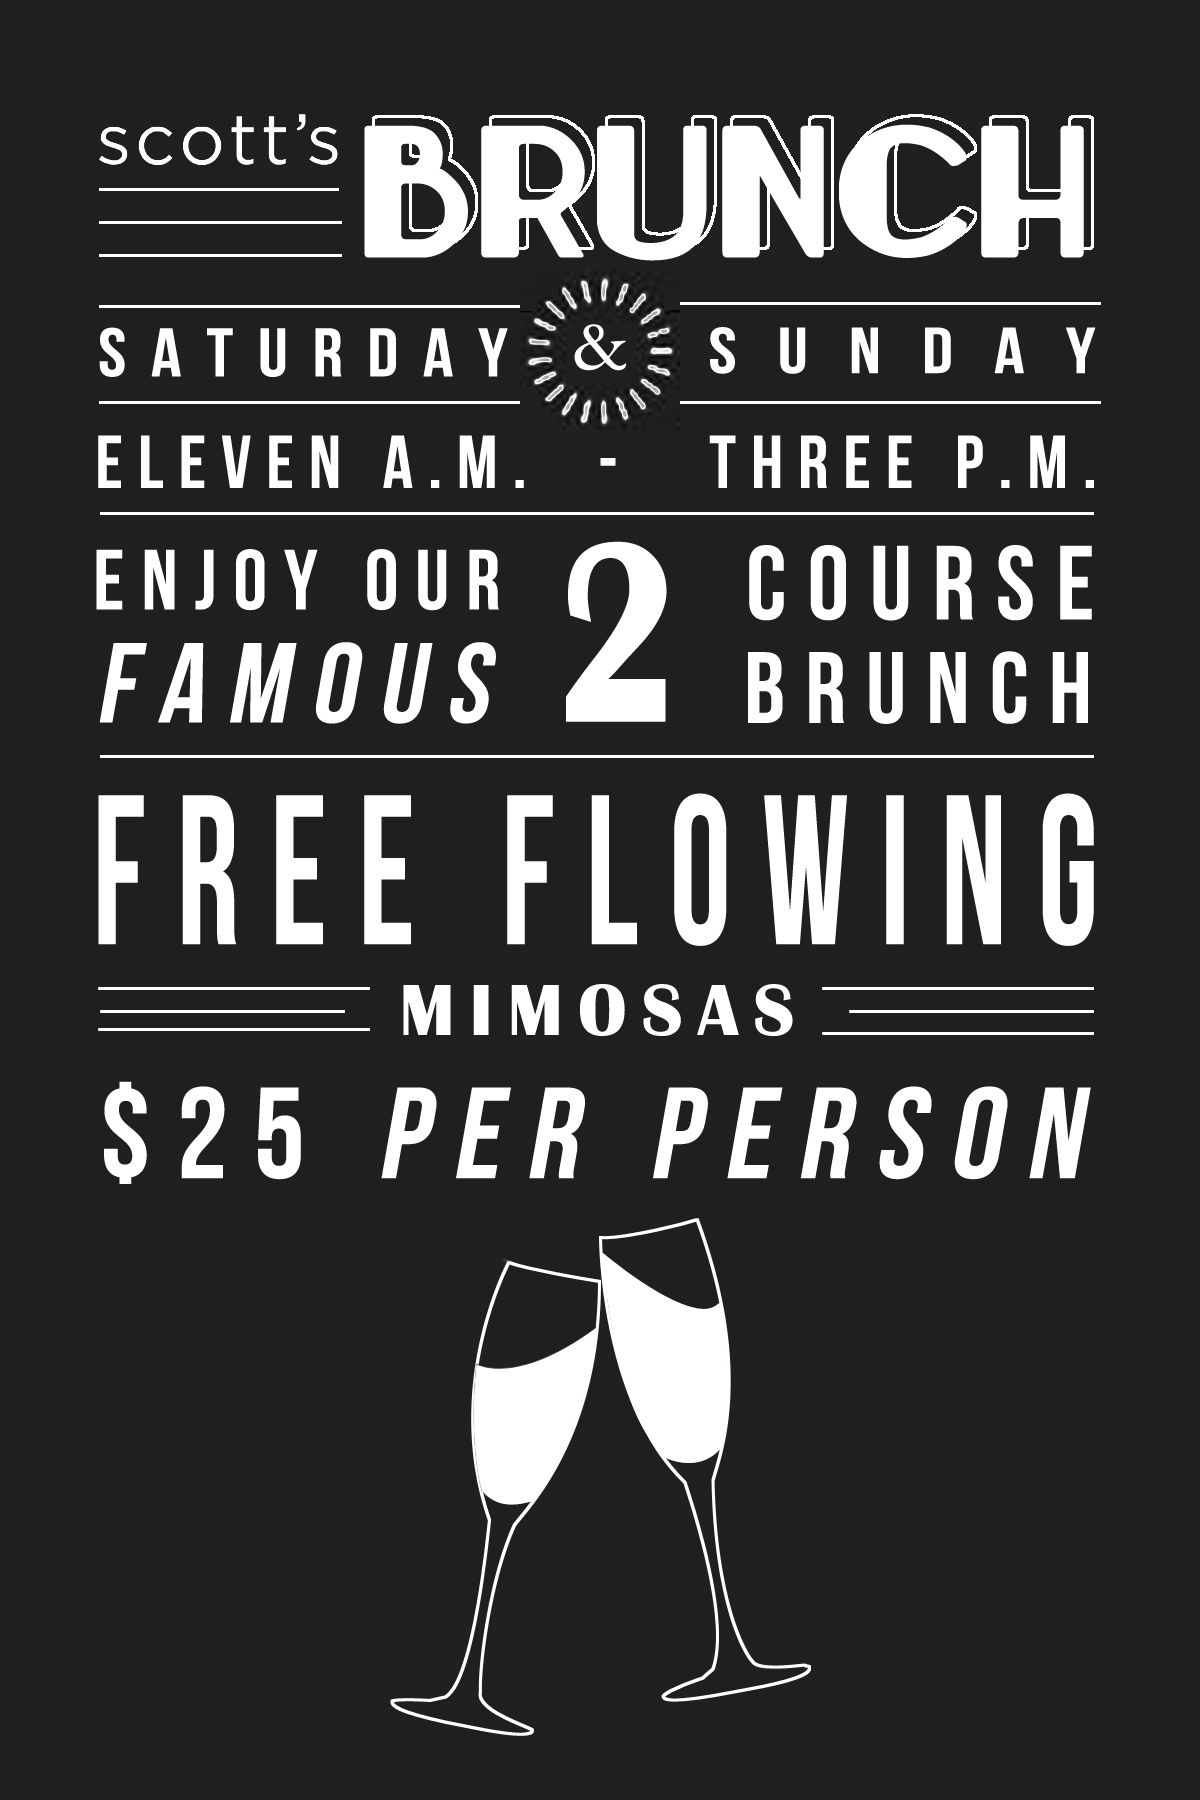 scott's restaurant & bar brunch flyer | // font // | pinterest